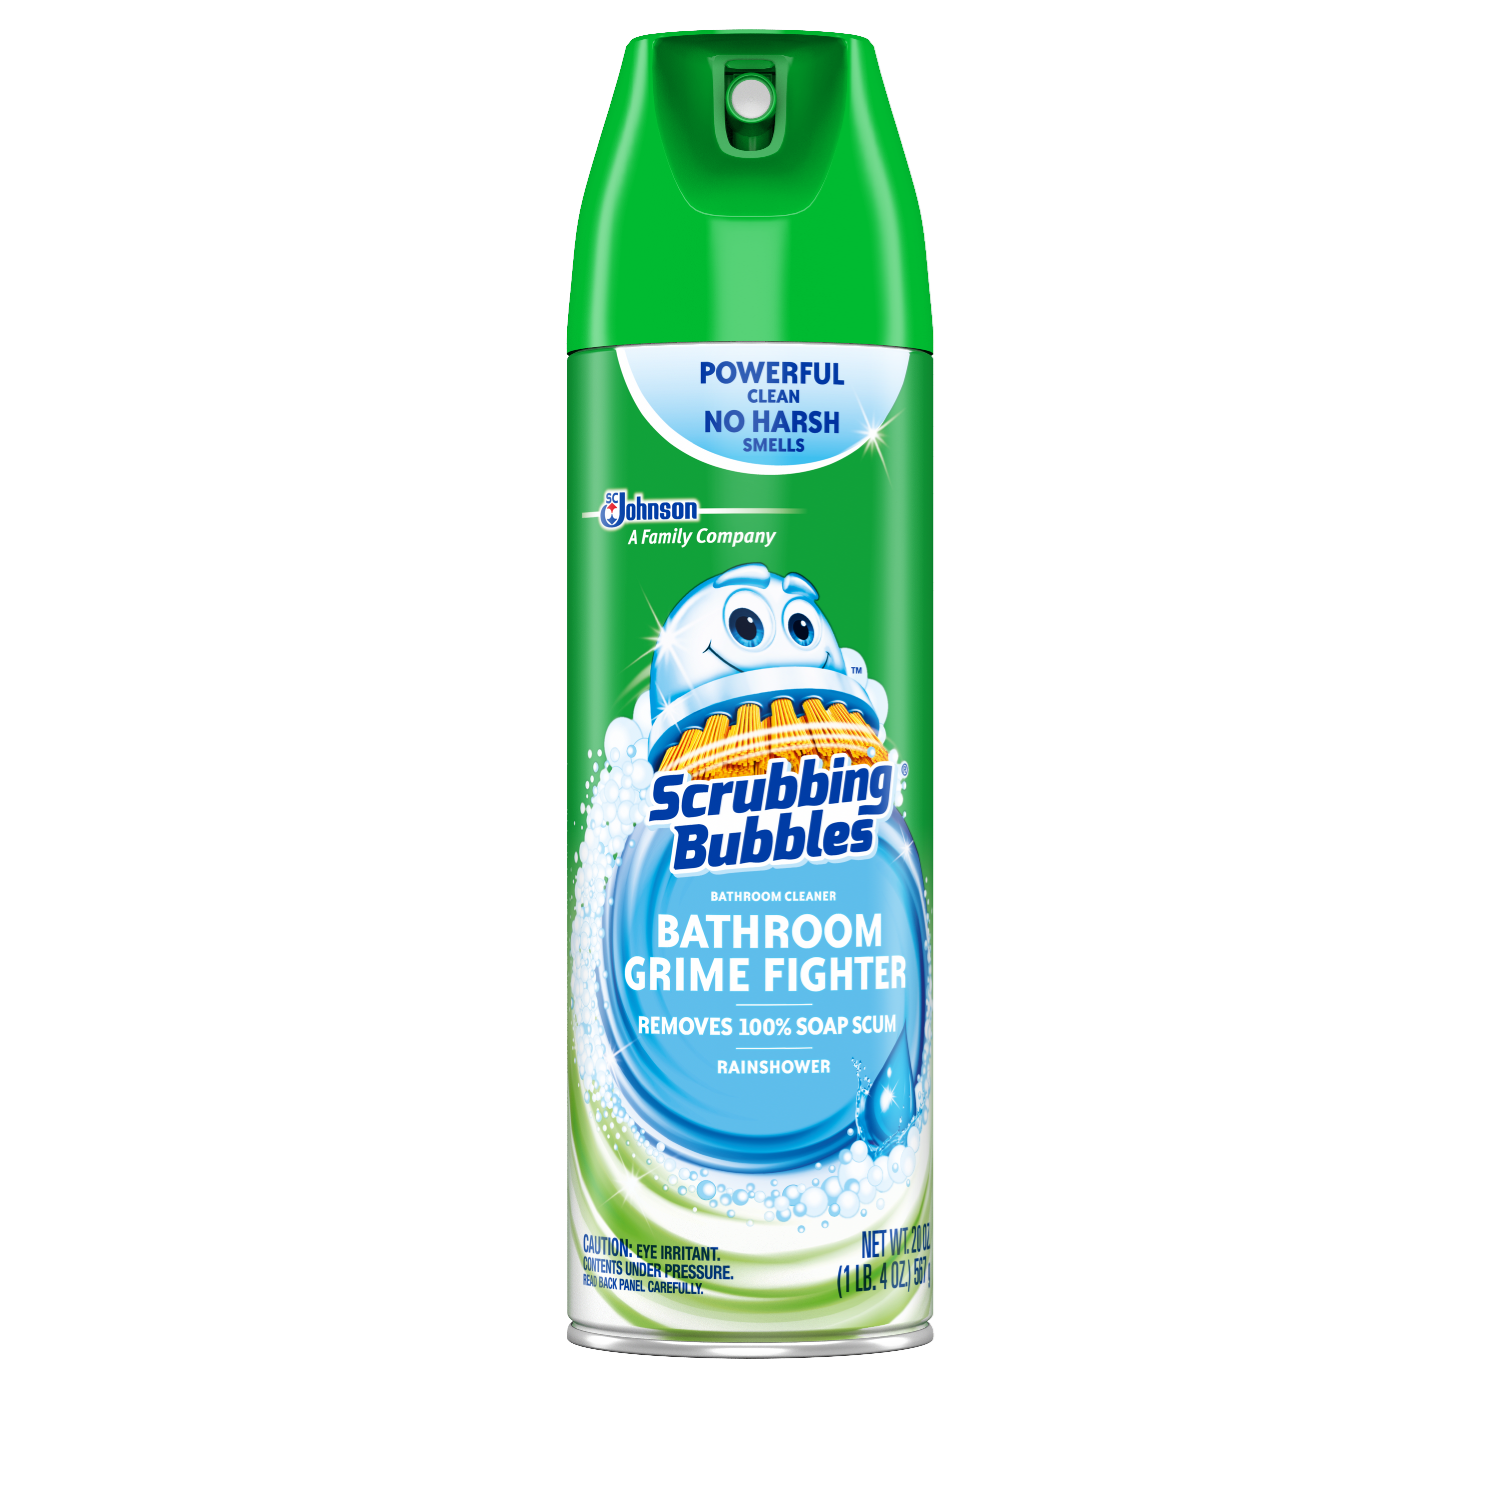 Scrubbing Bubbles® Multi-Surface Restroom Cleaners | SC Johnson